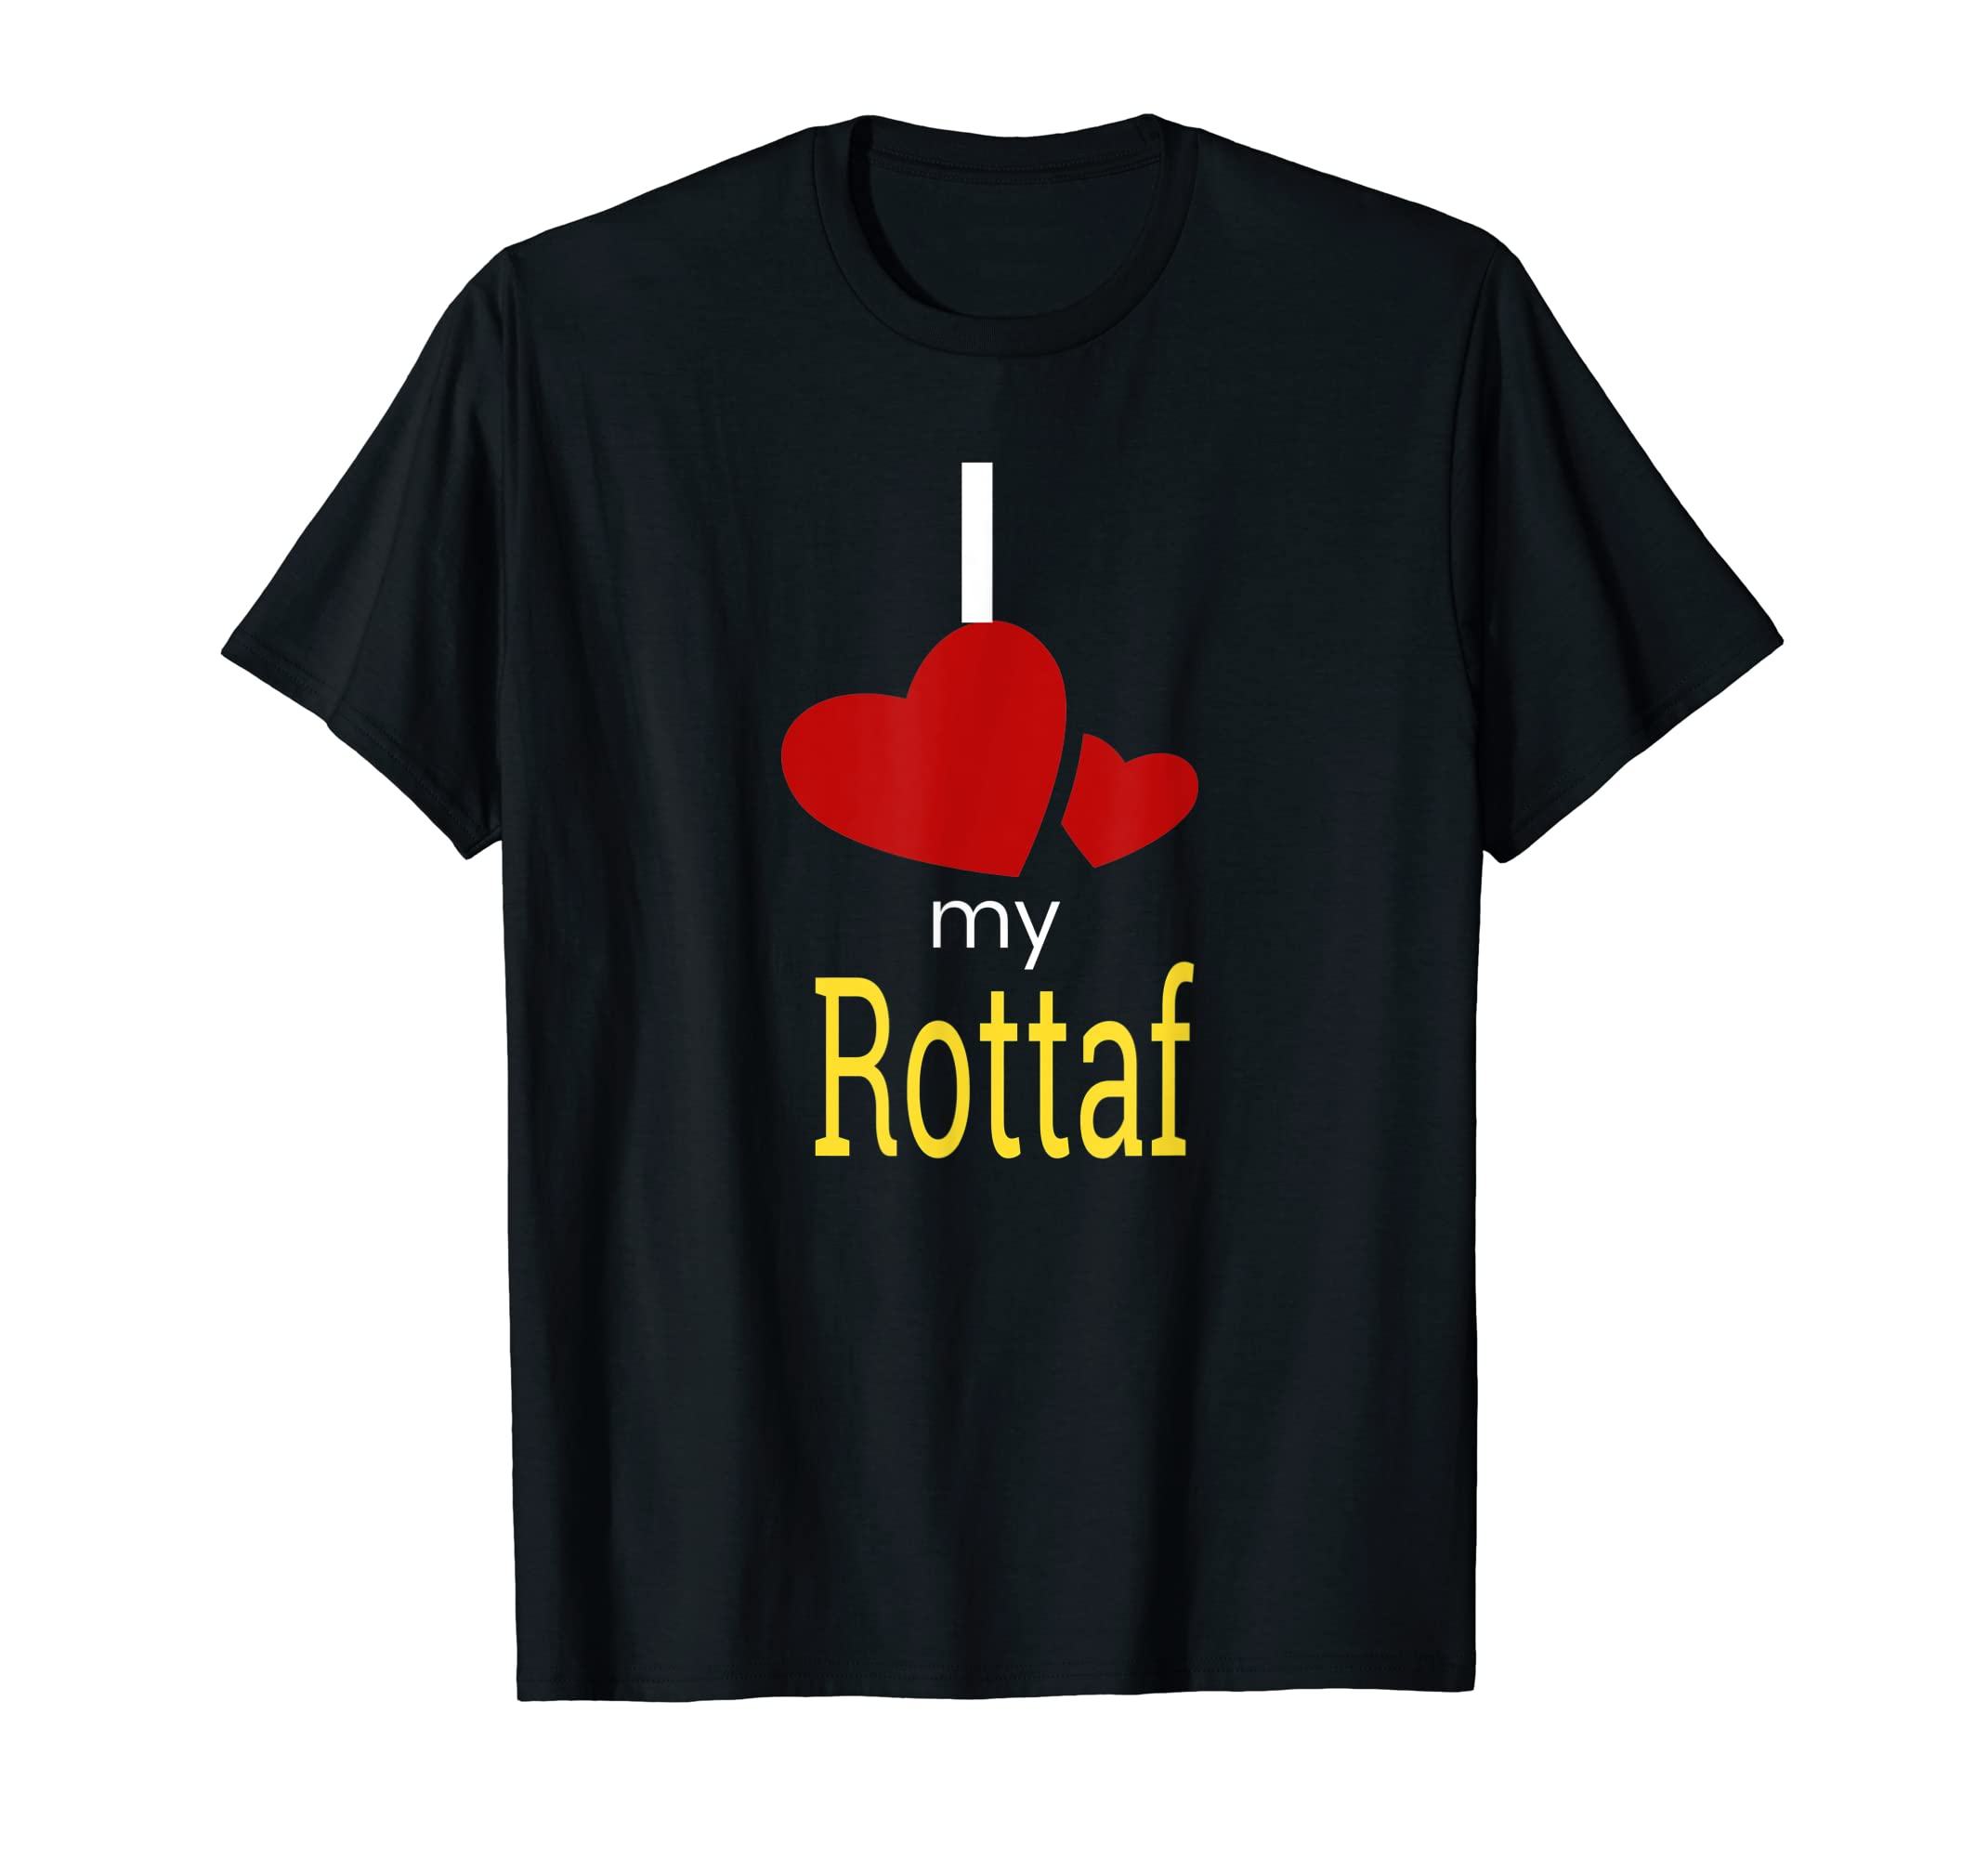 Rottaf Dog Shirt Love Rottweiler + Afghan Hound =  T-Shirt-Men's T-Shirt-Black